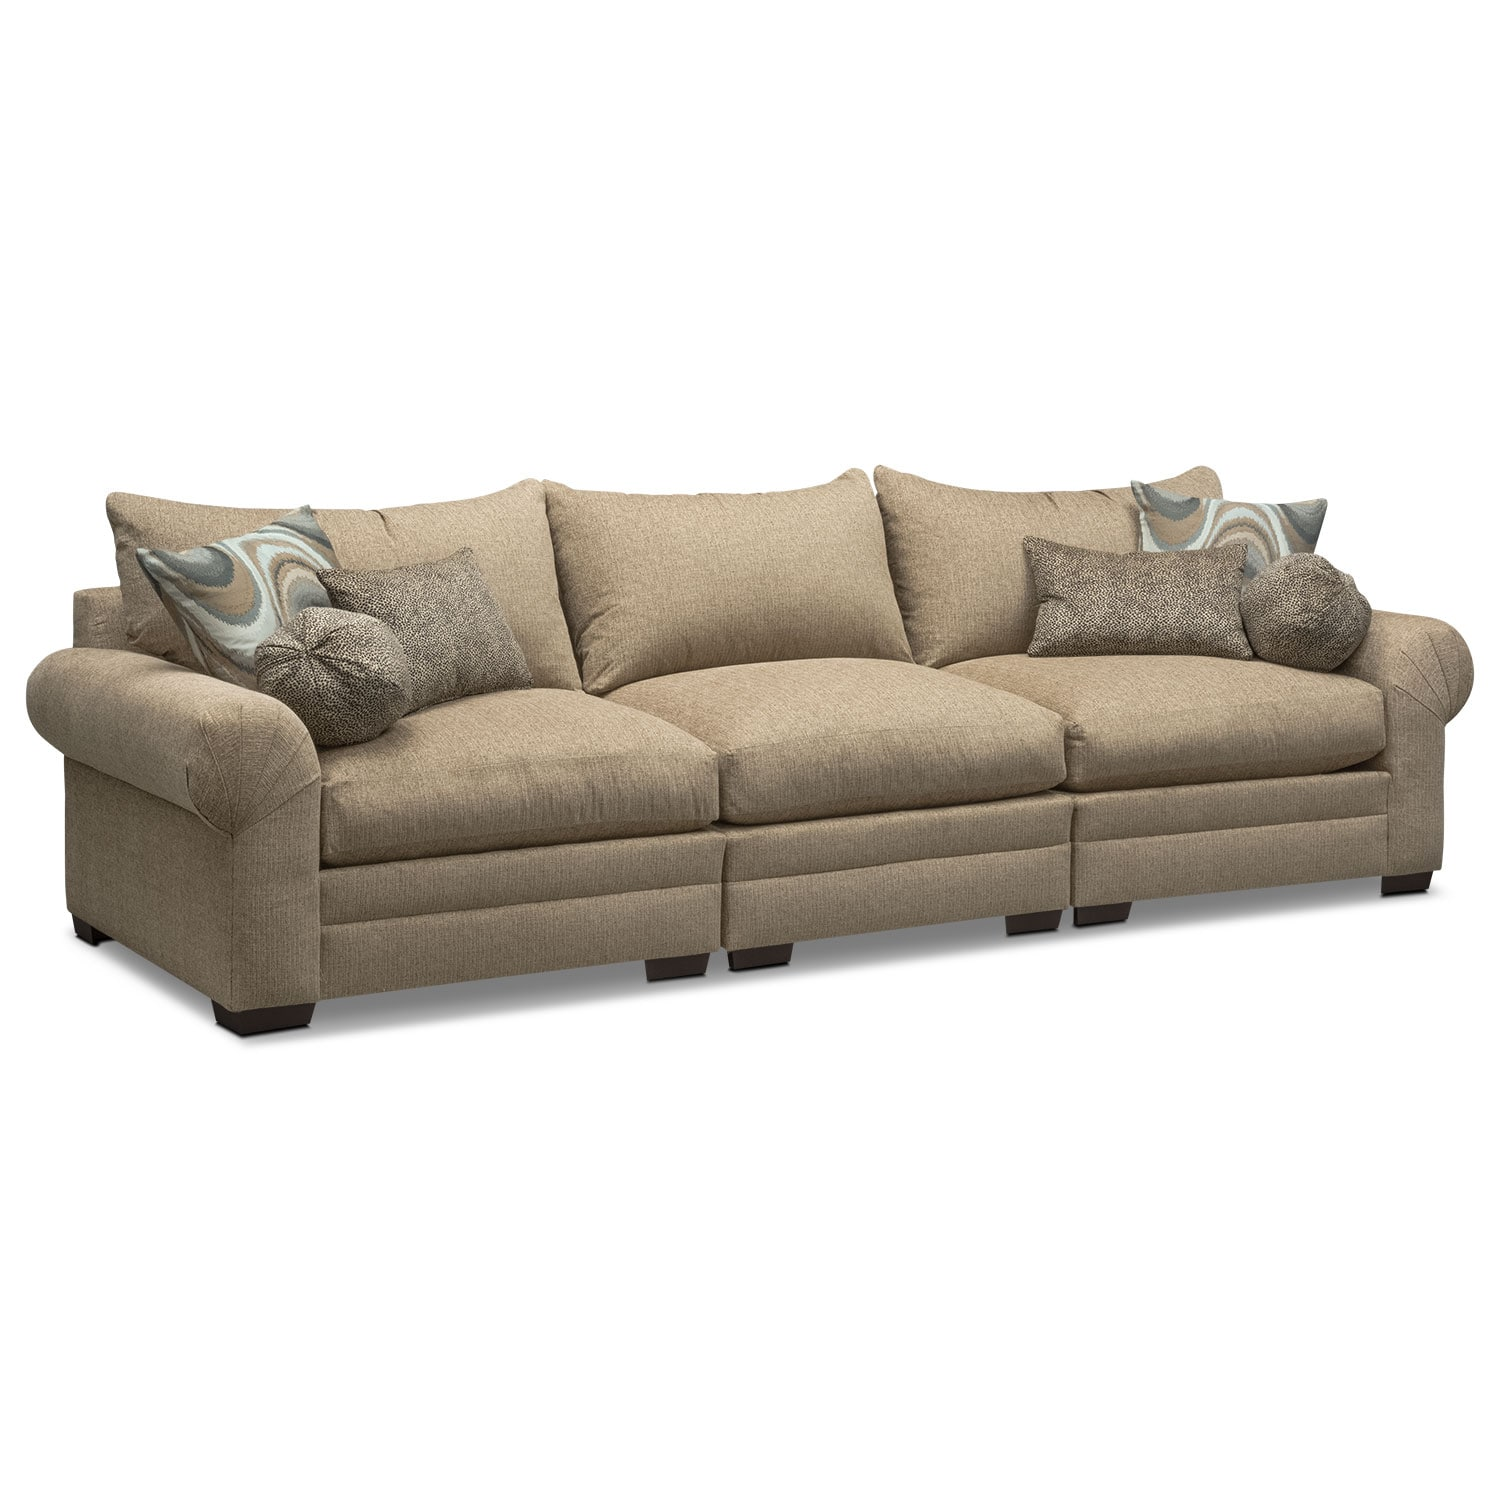 Living Room Furniture - Wilshire 3-Piece Sectional - Taupe